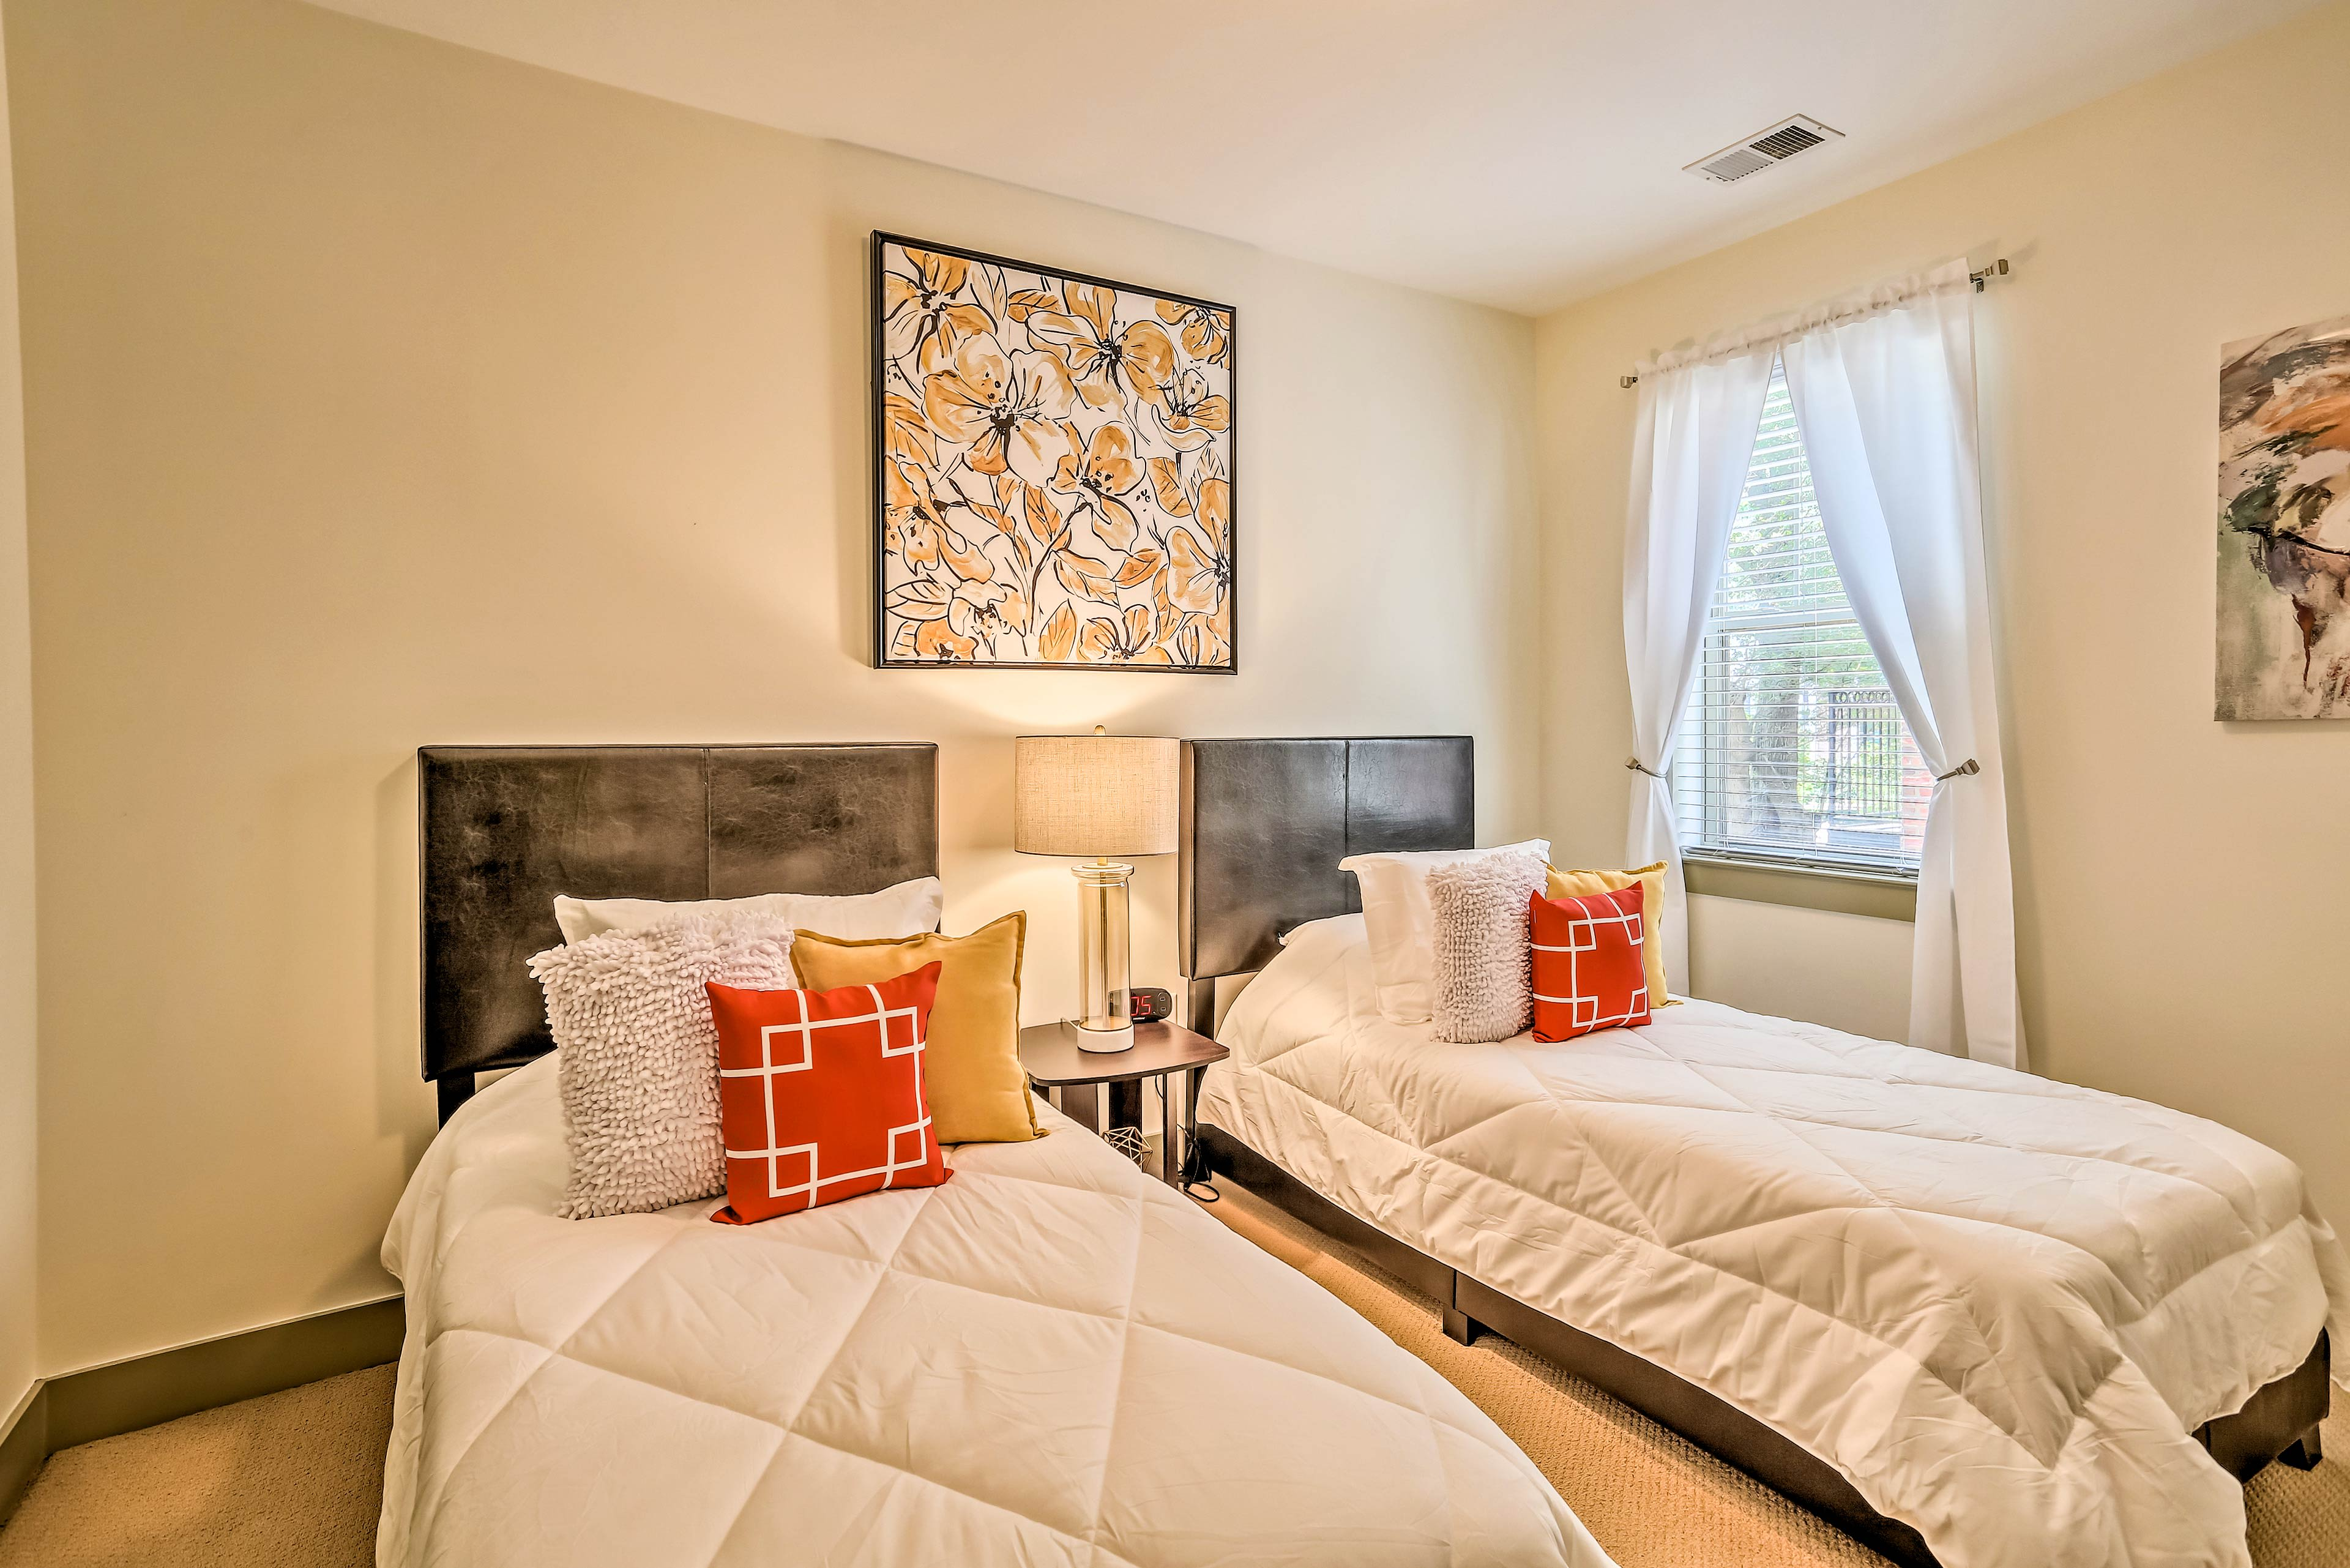 The 2nd bedroom features 2 twin beds.